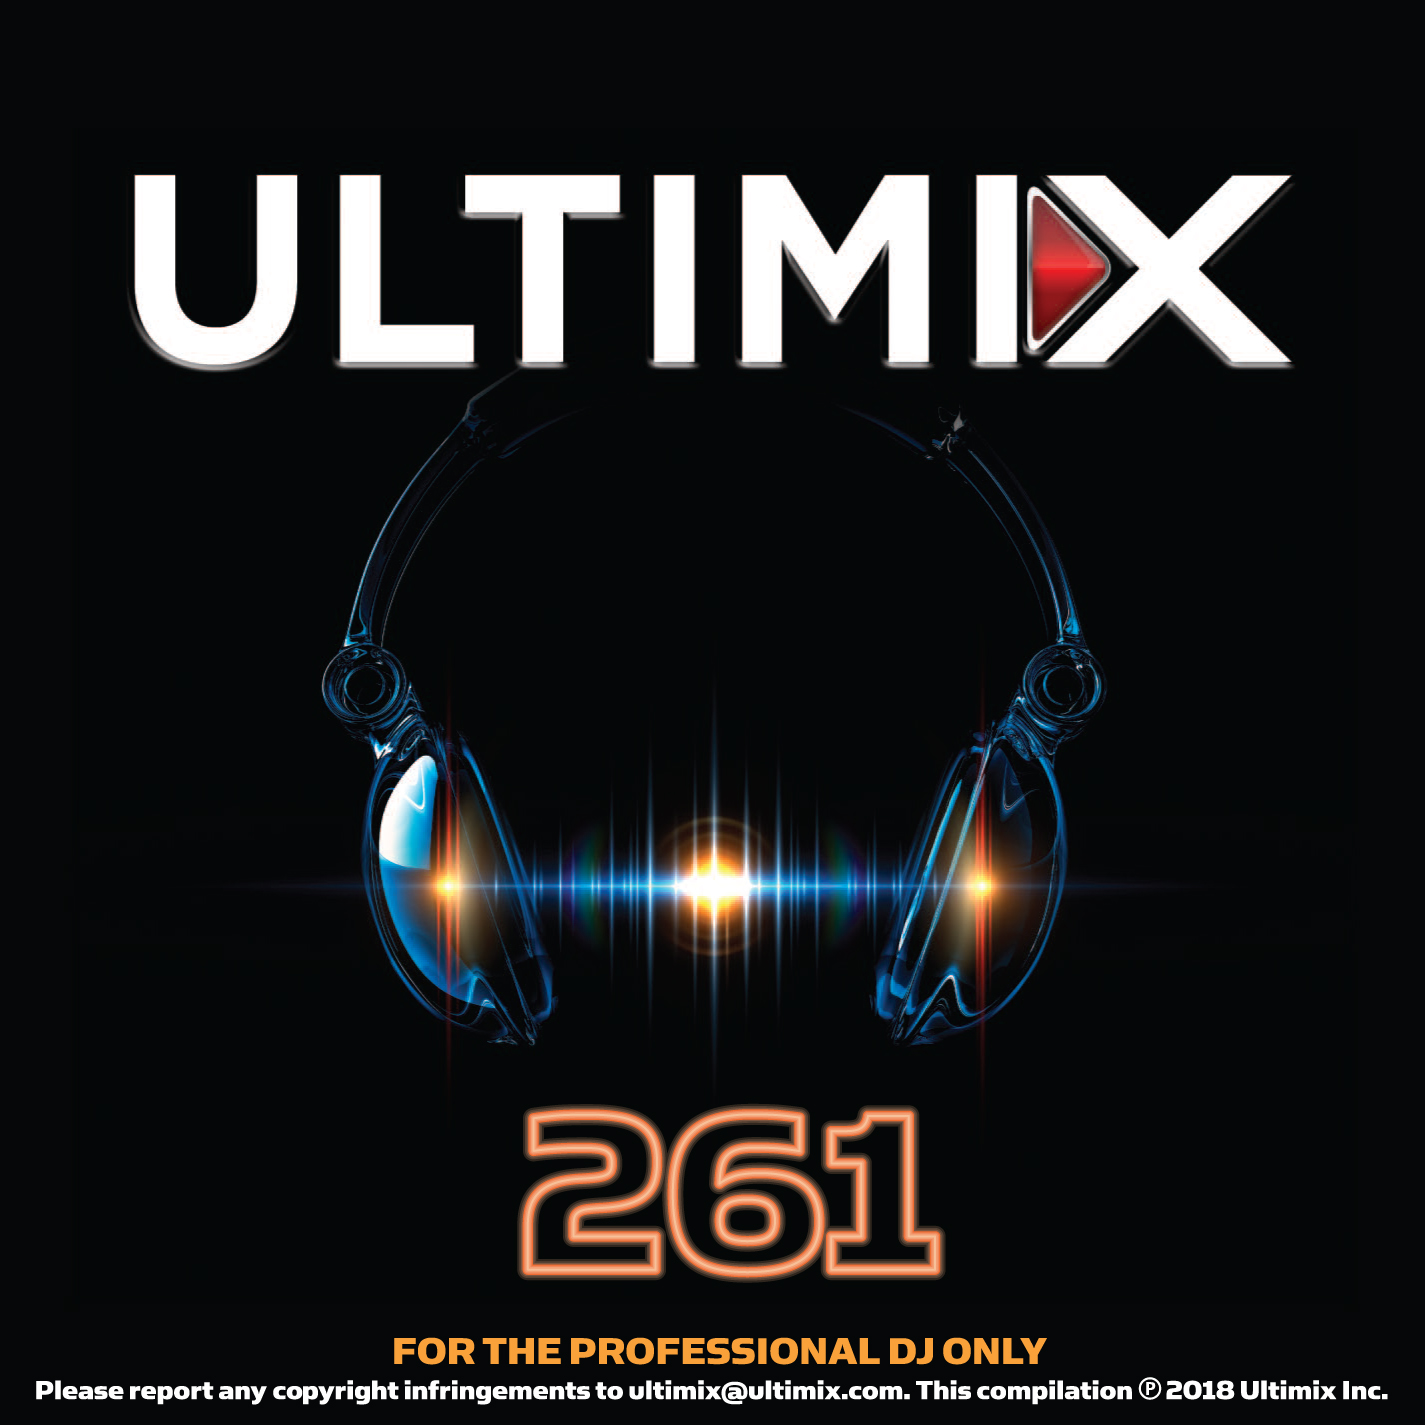 Ultimix 261